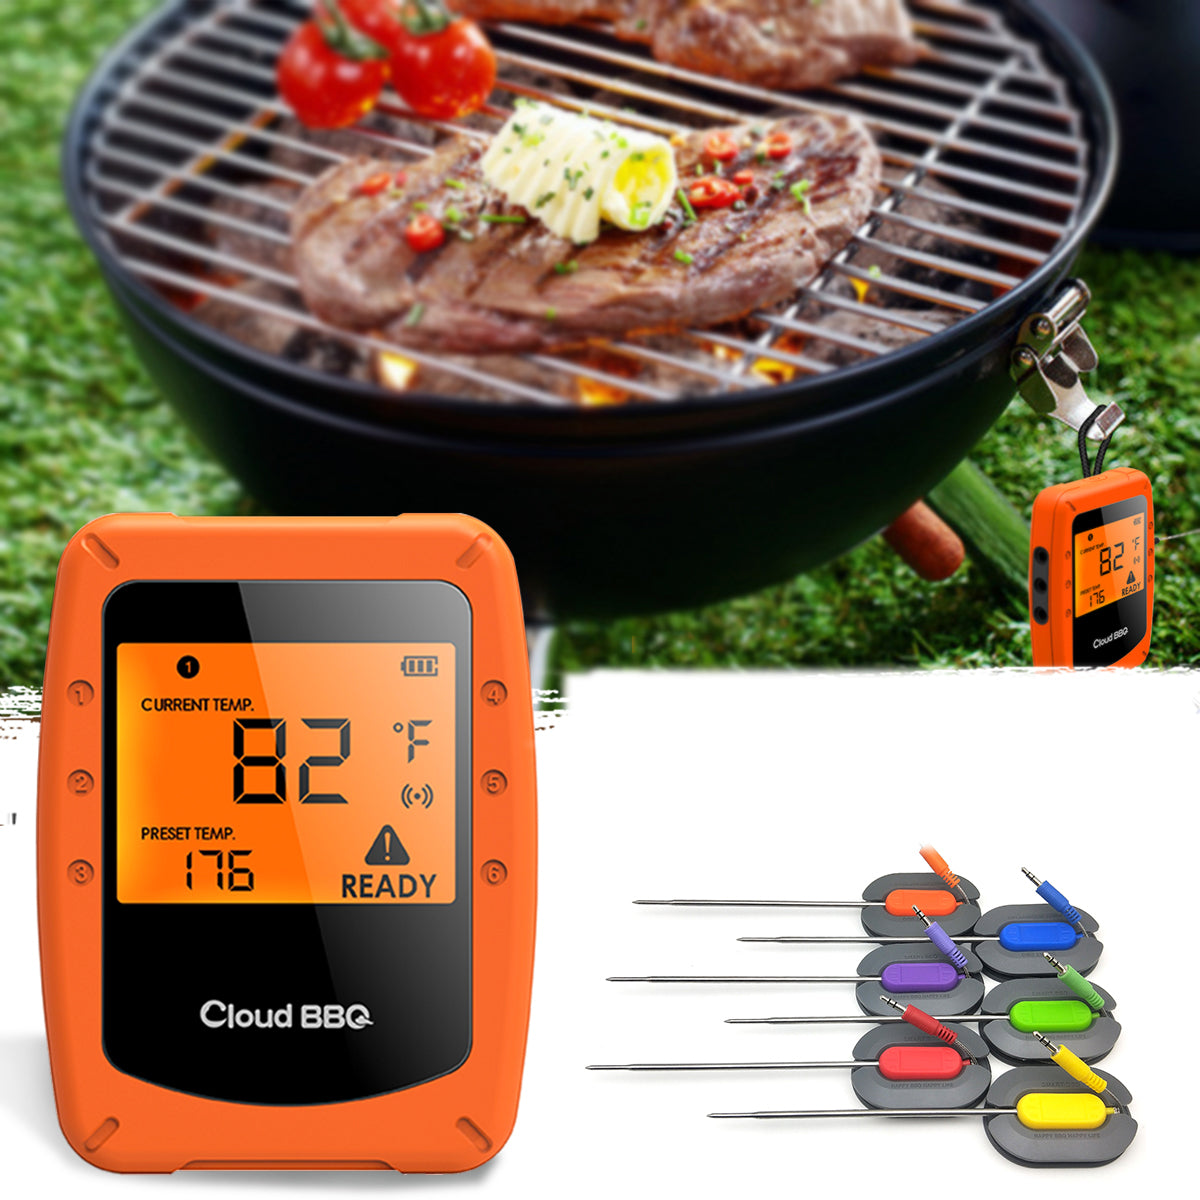 cozyrex,6 Probes Wireless Smart BBQ Thermometer Oven Meat Food bluetooth Wifi For IOS Android,CozyRex,